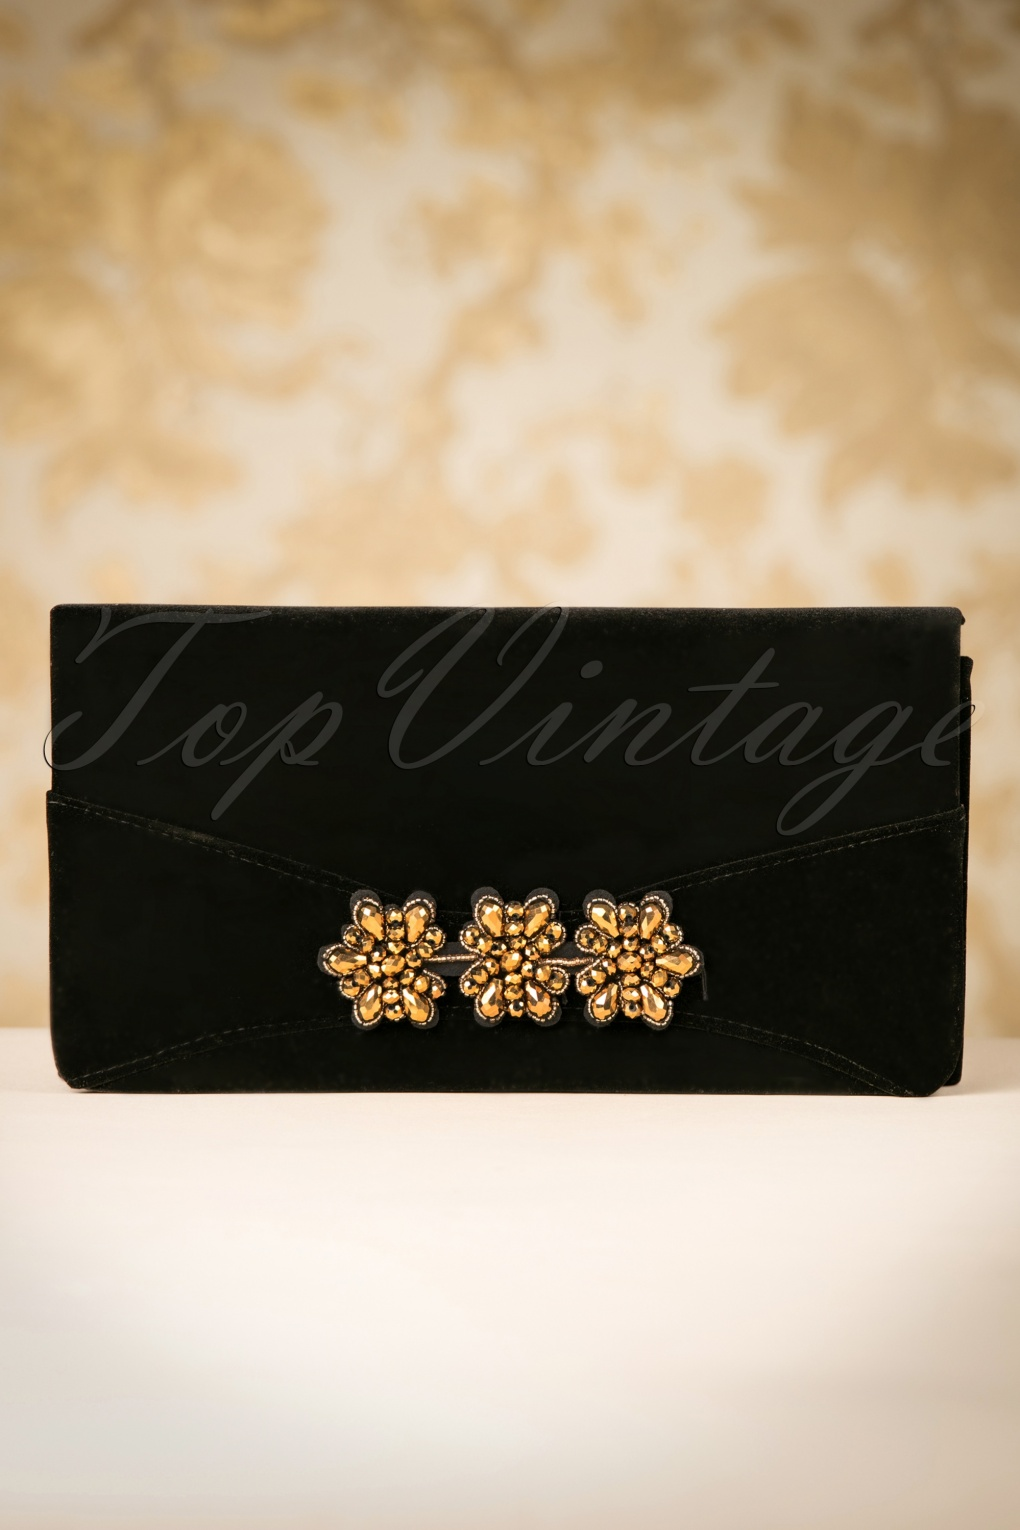 Retro Handbags, Purses, Wallets, Bags 30s Virginia Velvet Clutch in Black £14.76 AT vintagedancer.com